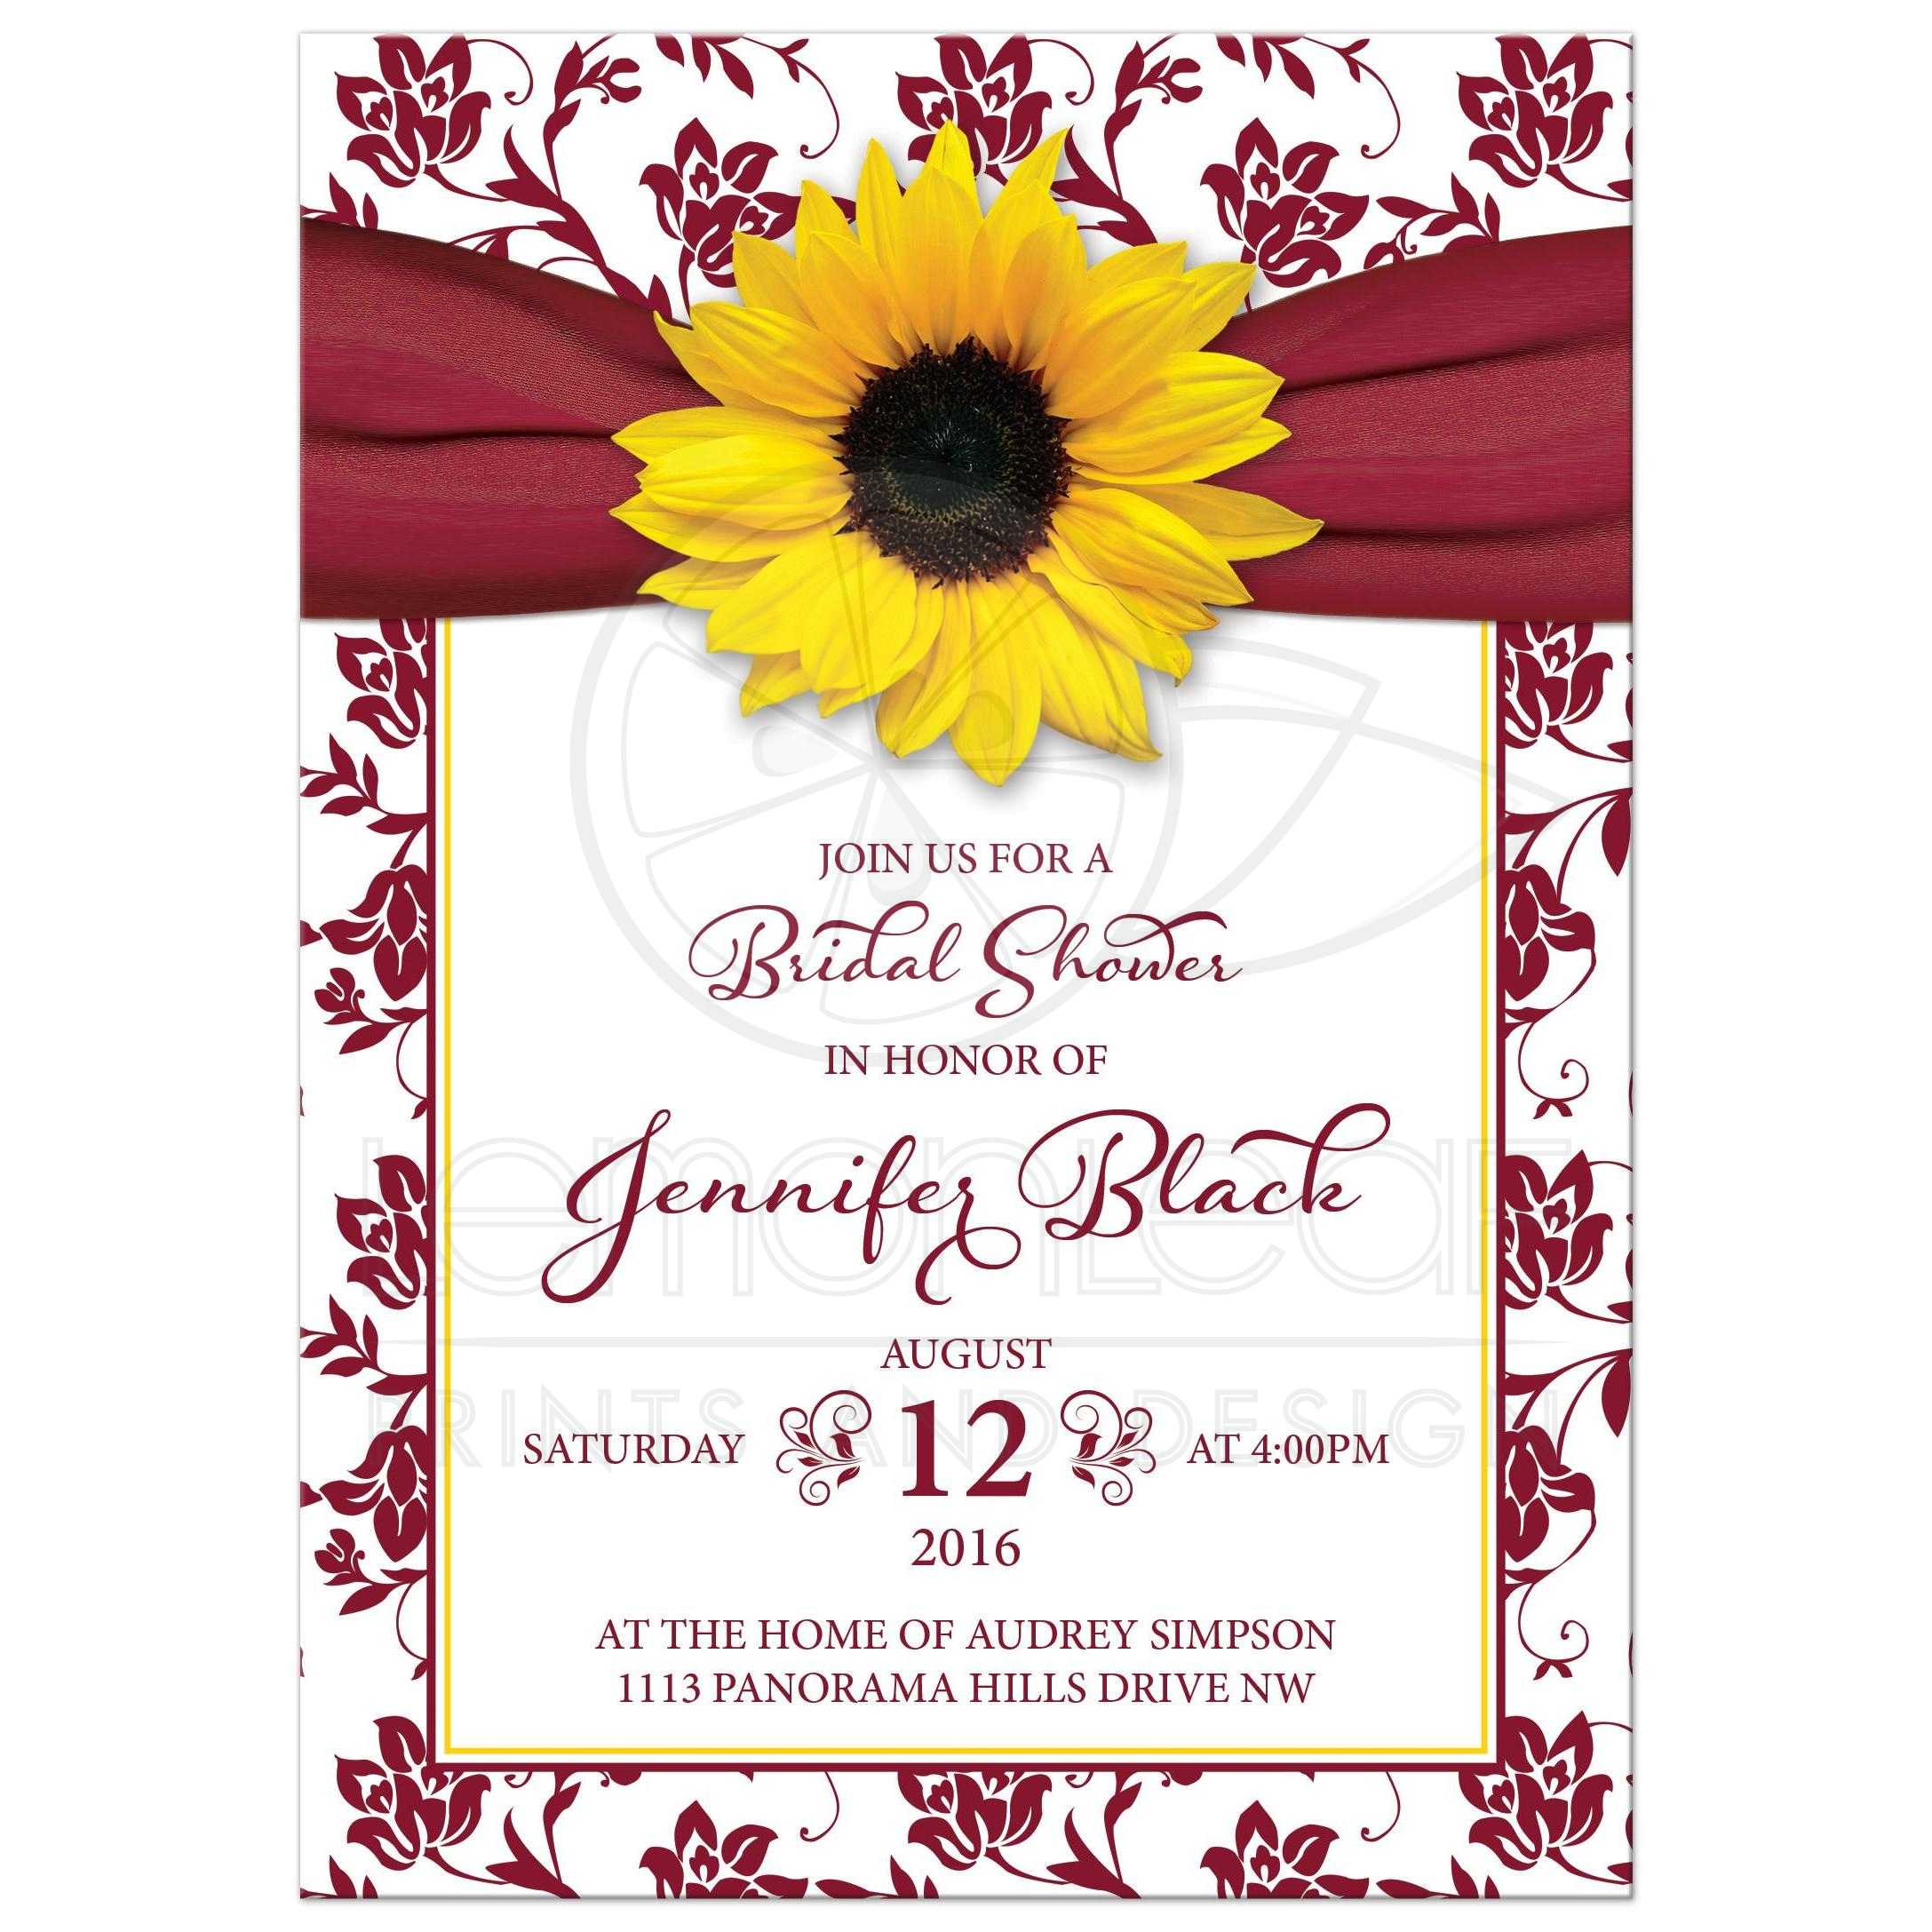 Fall sunflower bridal shower invitation burgundy yellow ribbon floral sunflower burgundy ribbon damask floral fall bridal shower invitation front filmwisefo Images